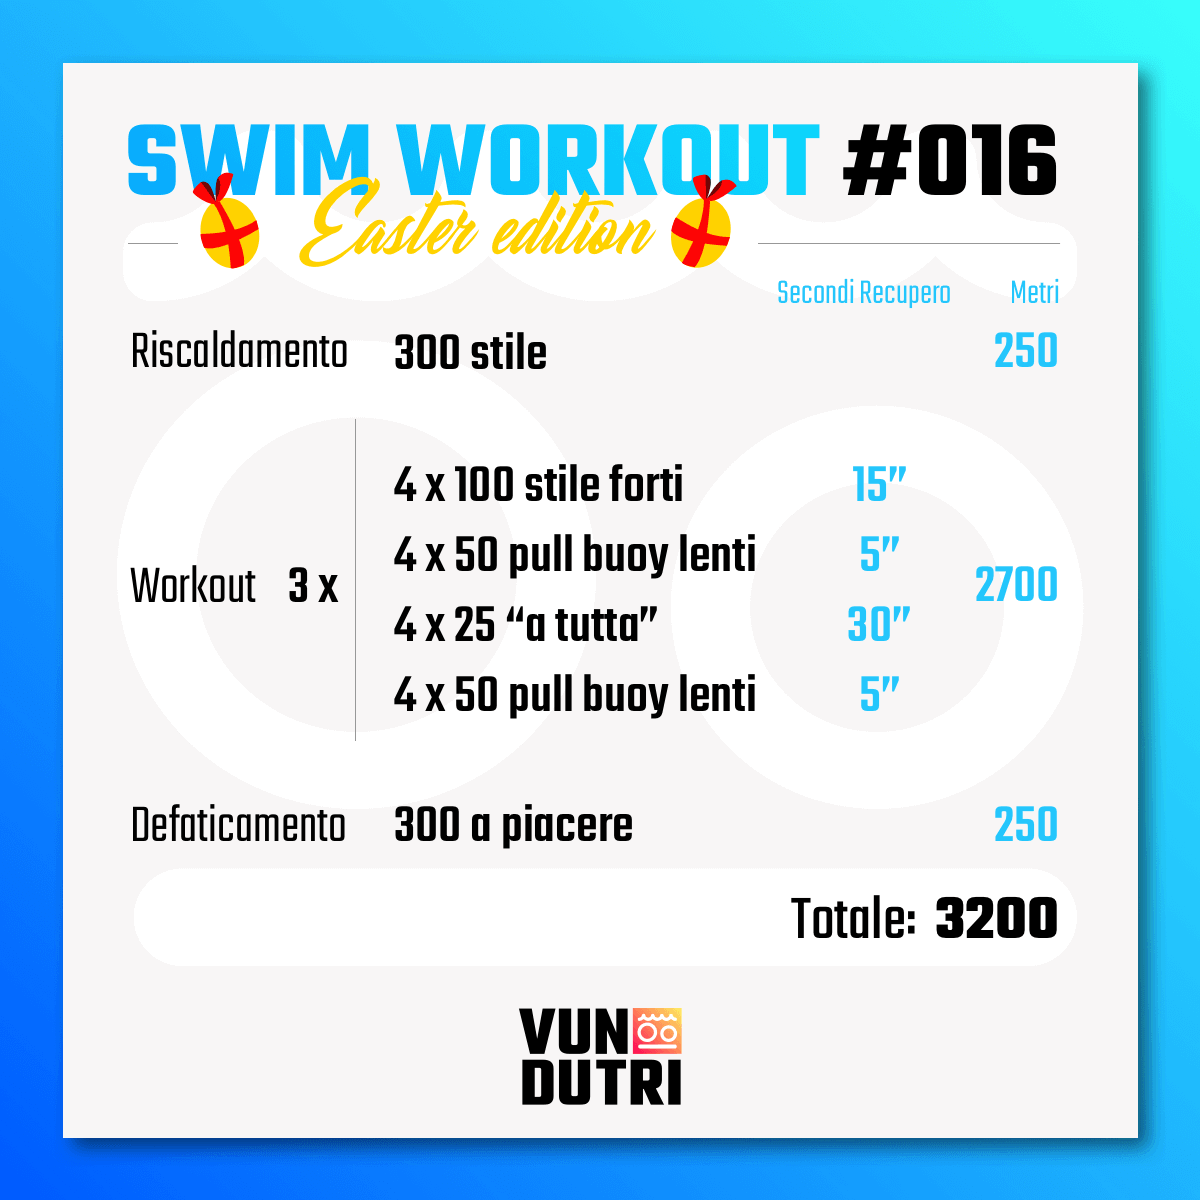 Swim workout 016